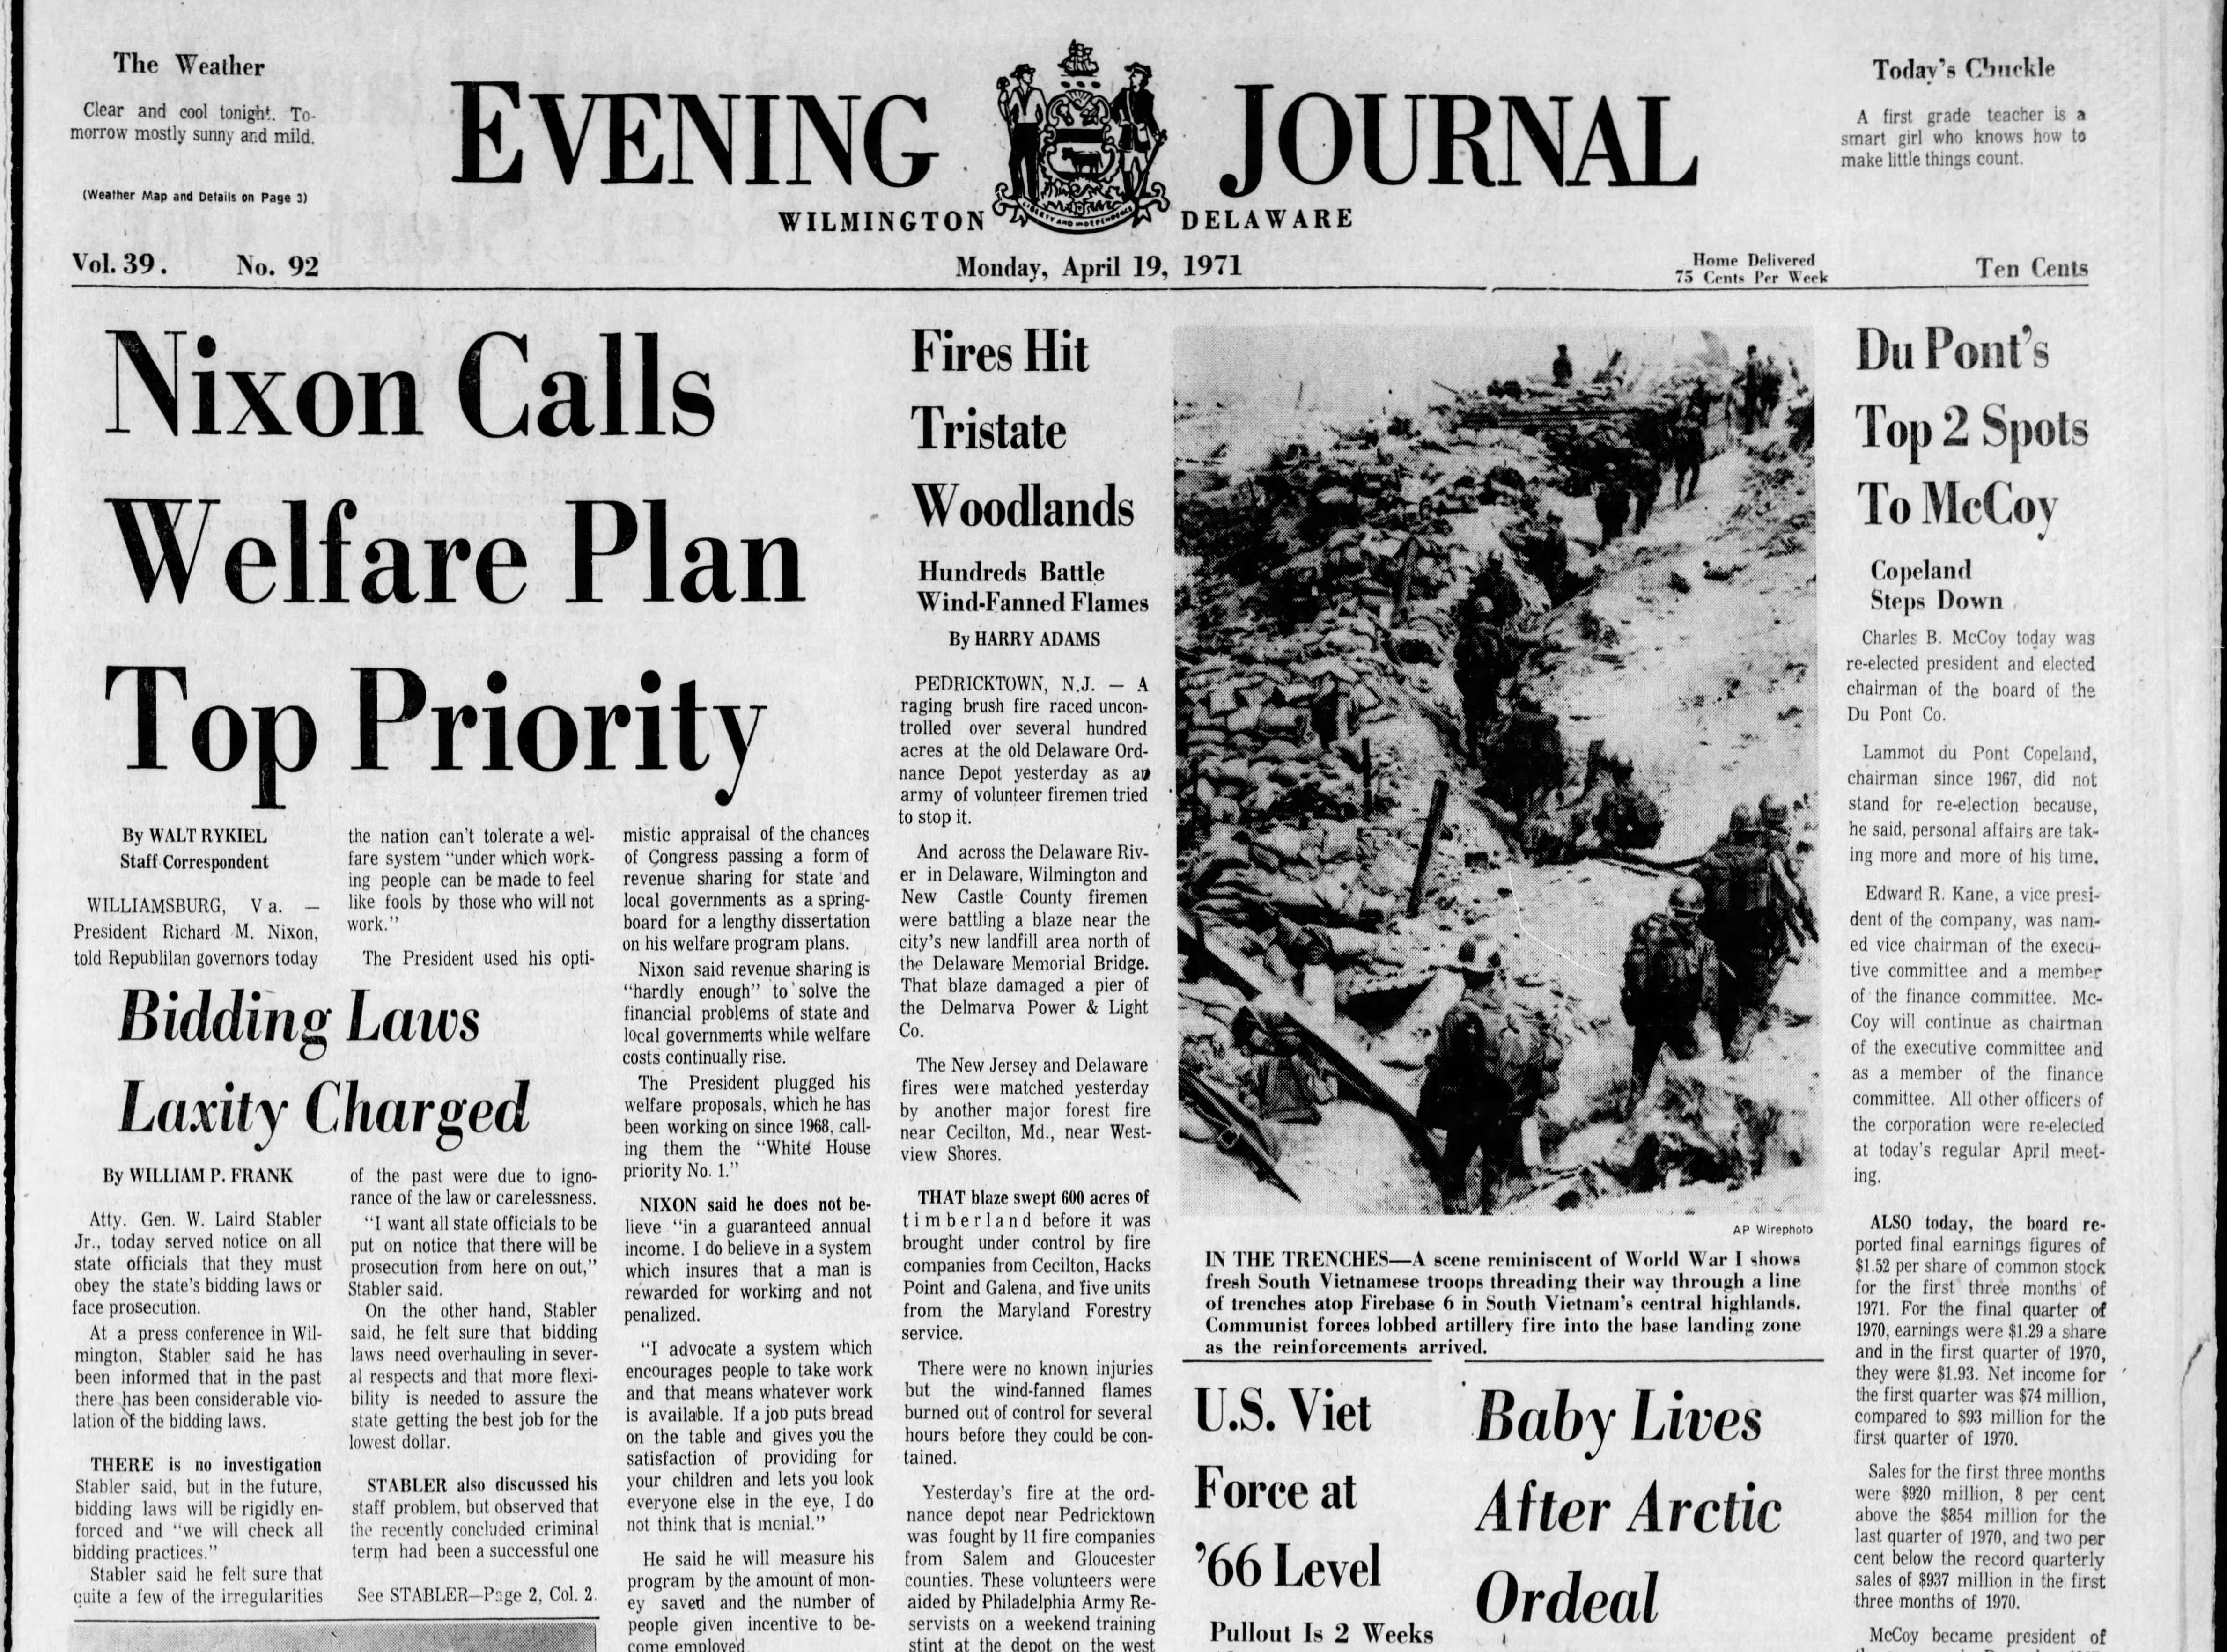 delawareonline.com - Ben Mace, The News Journal - Pages of history: From The News Journal archives, week of April 18